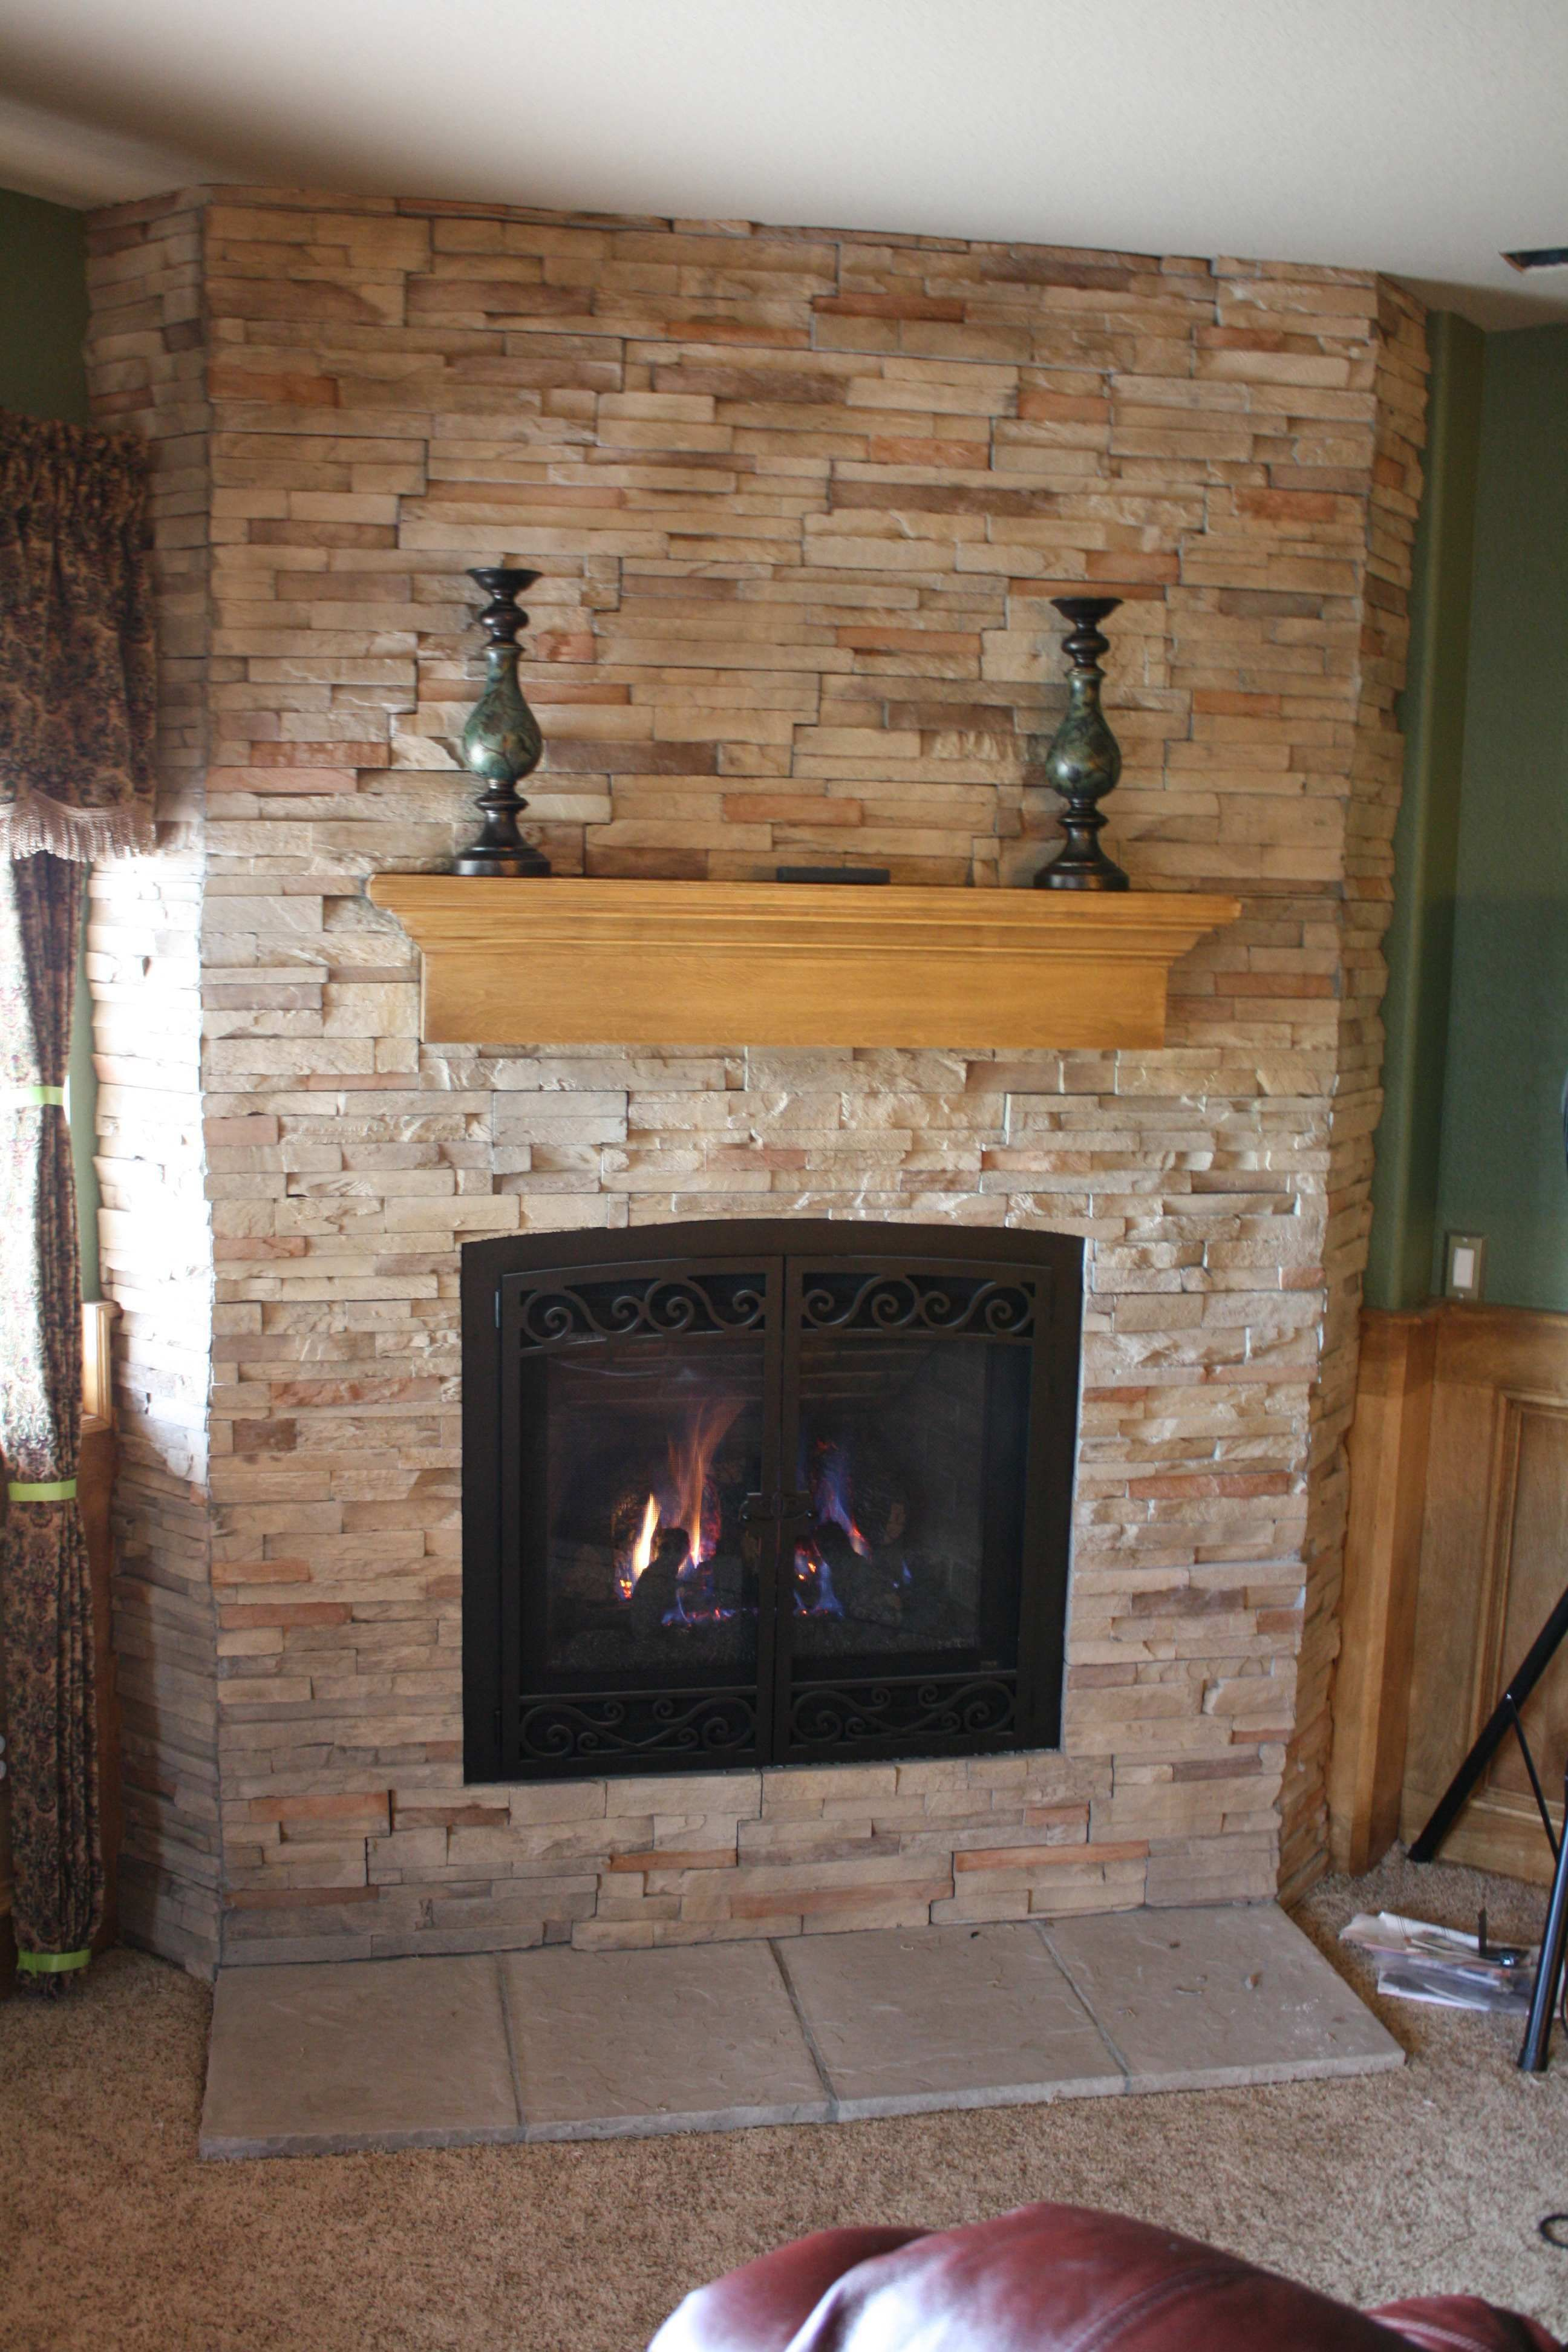 Diy Fireplace Refacing Stone Make An Easy Fireplace Refacing Awesome Refacing A Fireplace #12 Reface Brick Fireplace